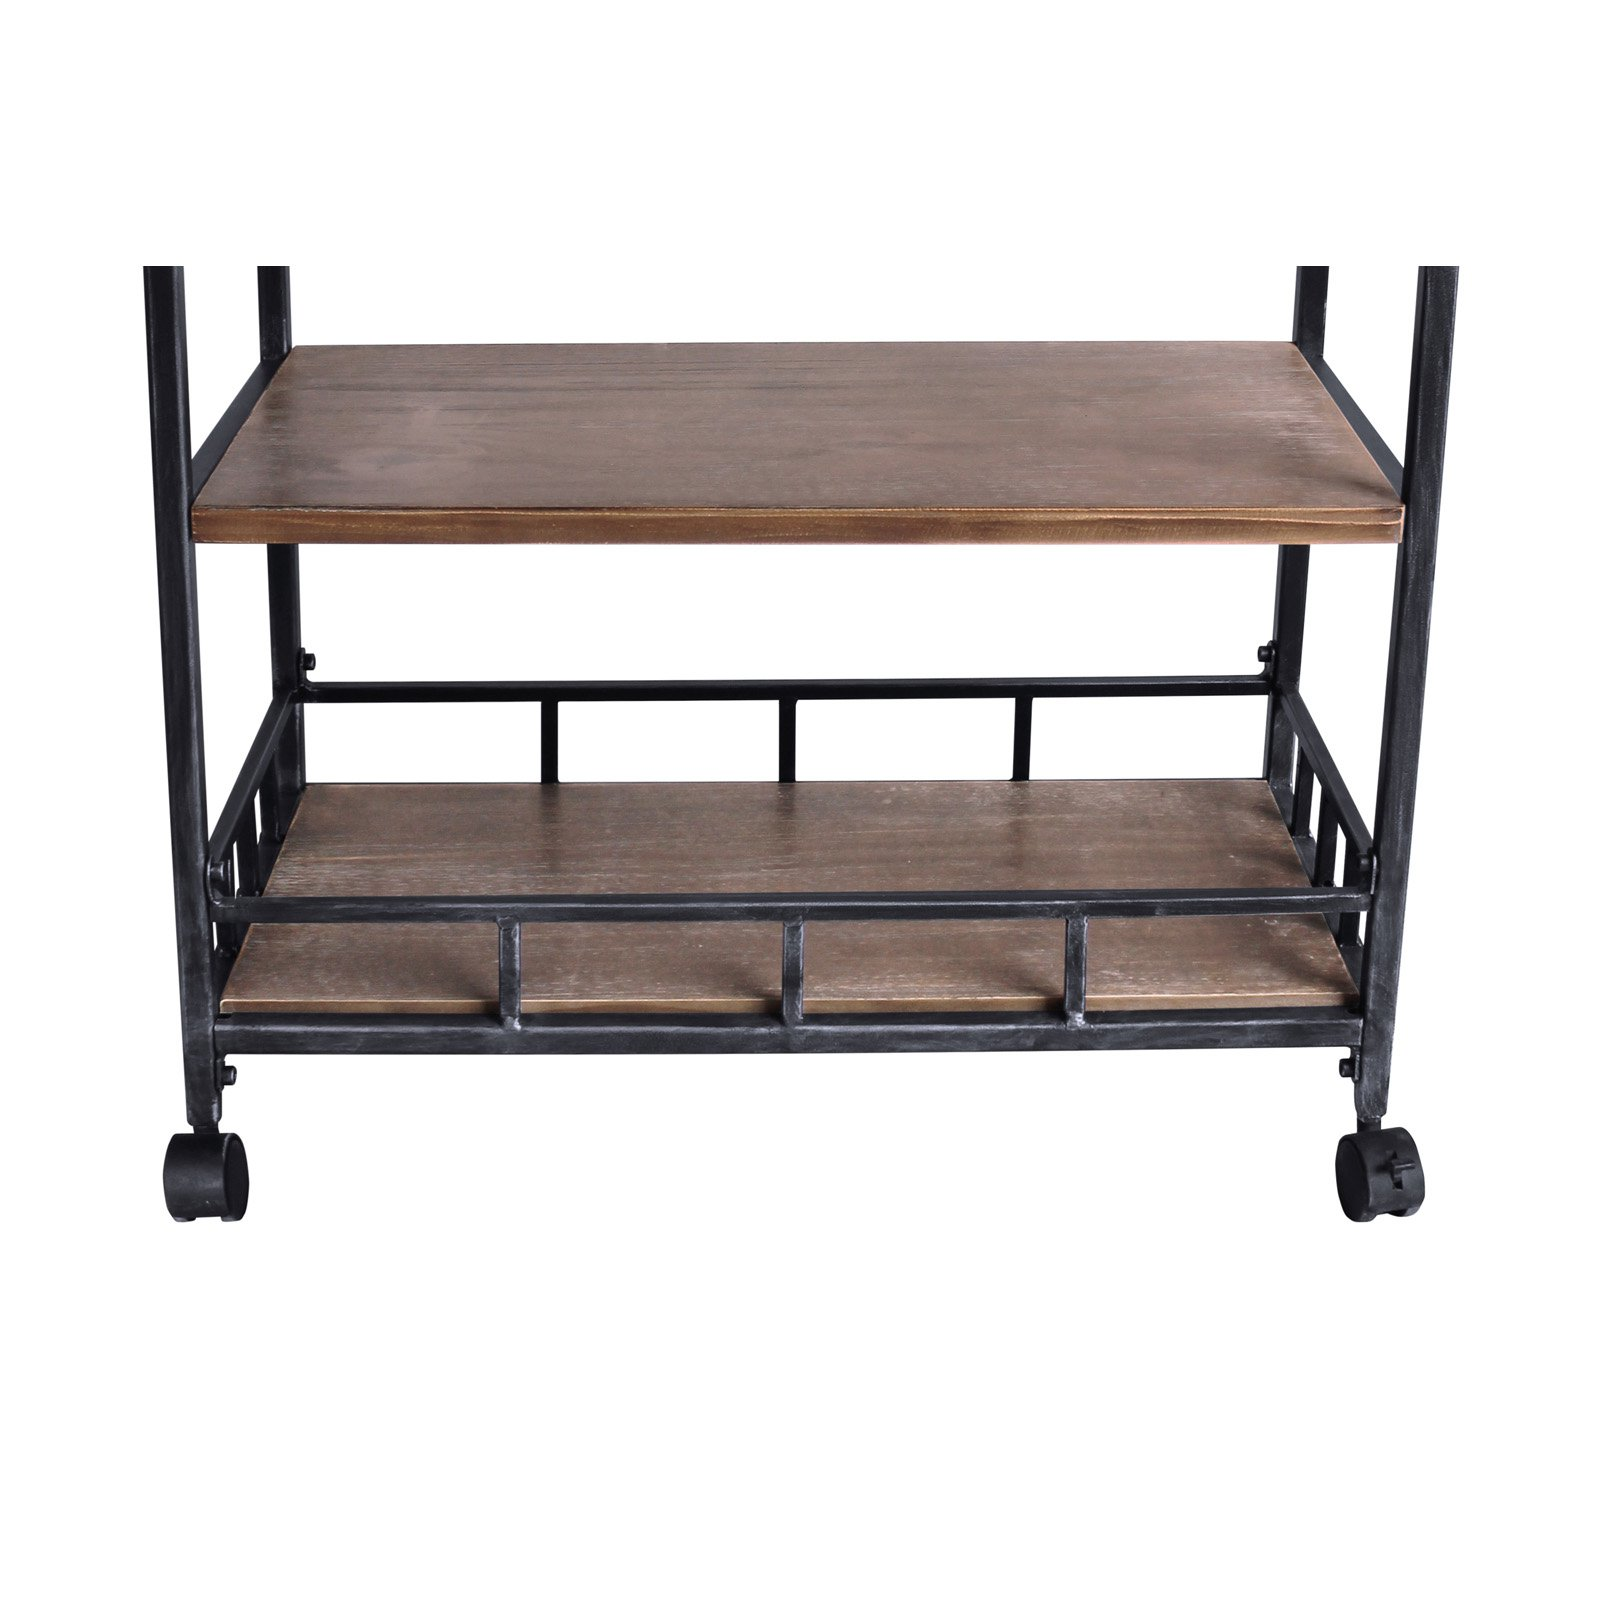 Home Chic Dublin Portable Industrial Kitchen Cart